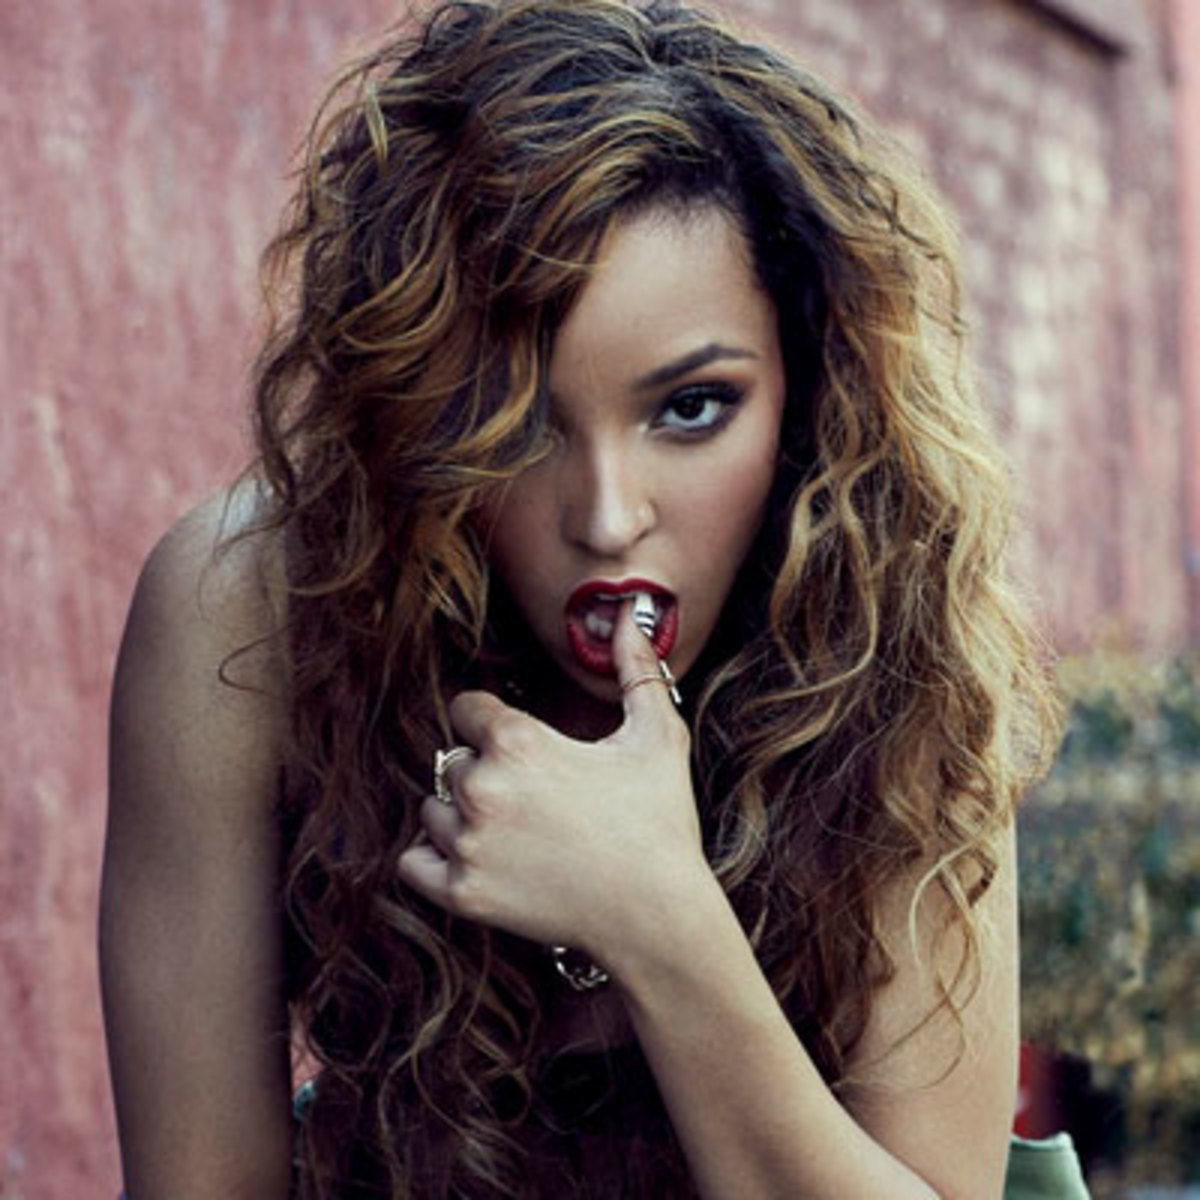 tinashe-contest-am.jpg